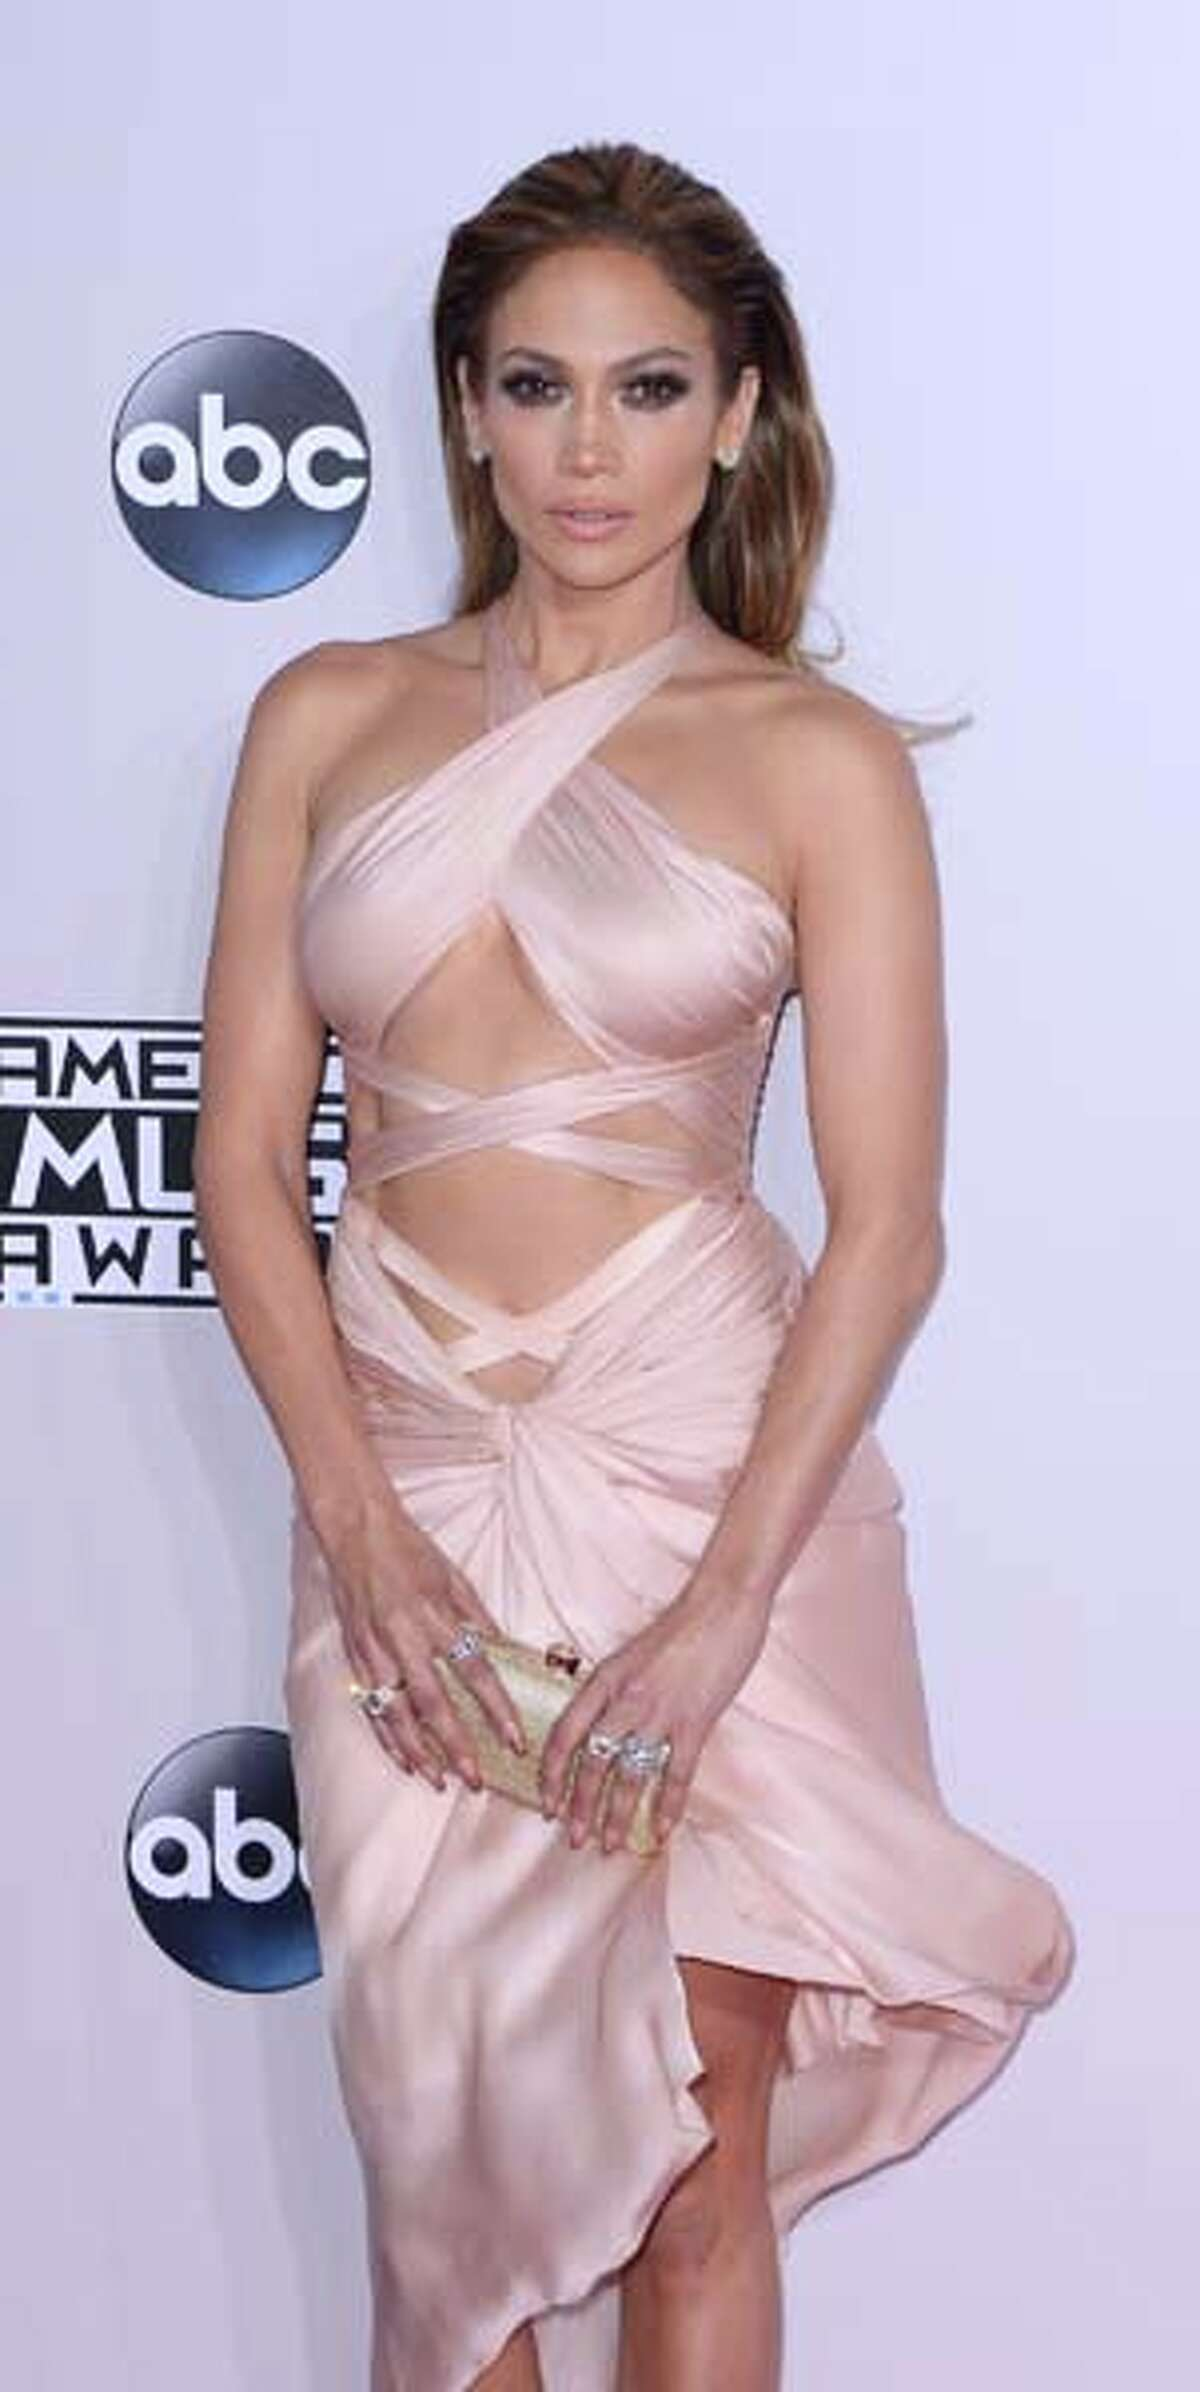 Jennifer Lopez has once again mastered the art of twisting strips of fabric into a masterpiece made for the sexiest baton twirler at the red carpet parade.